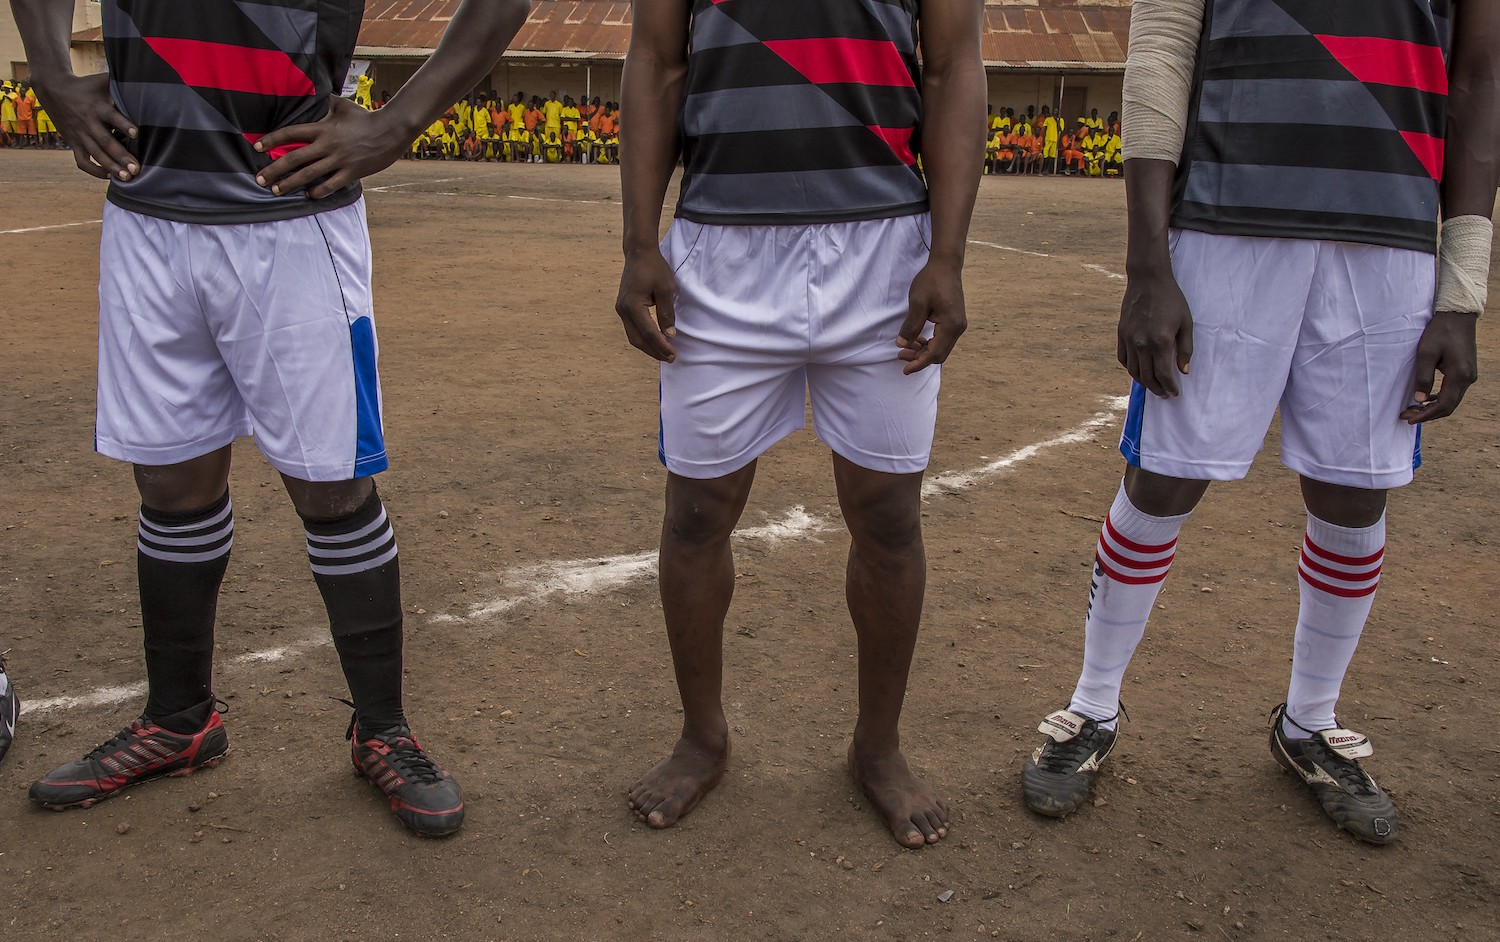 In Luzira Prison, in Kampala, a football league is organized. The teams composed of inmates meet each other throughout the year until a final. The teams are named mainly out of English Premier League clubs: Manchester United, Liverpool, Everton, ... The pitch is the courtyard of the Upper Prison, the most secure place of the Prison large compound. Hundreds of inmates come to support their favorite team. A Liverpool player plays the final barefoot.